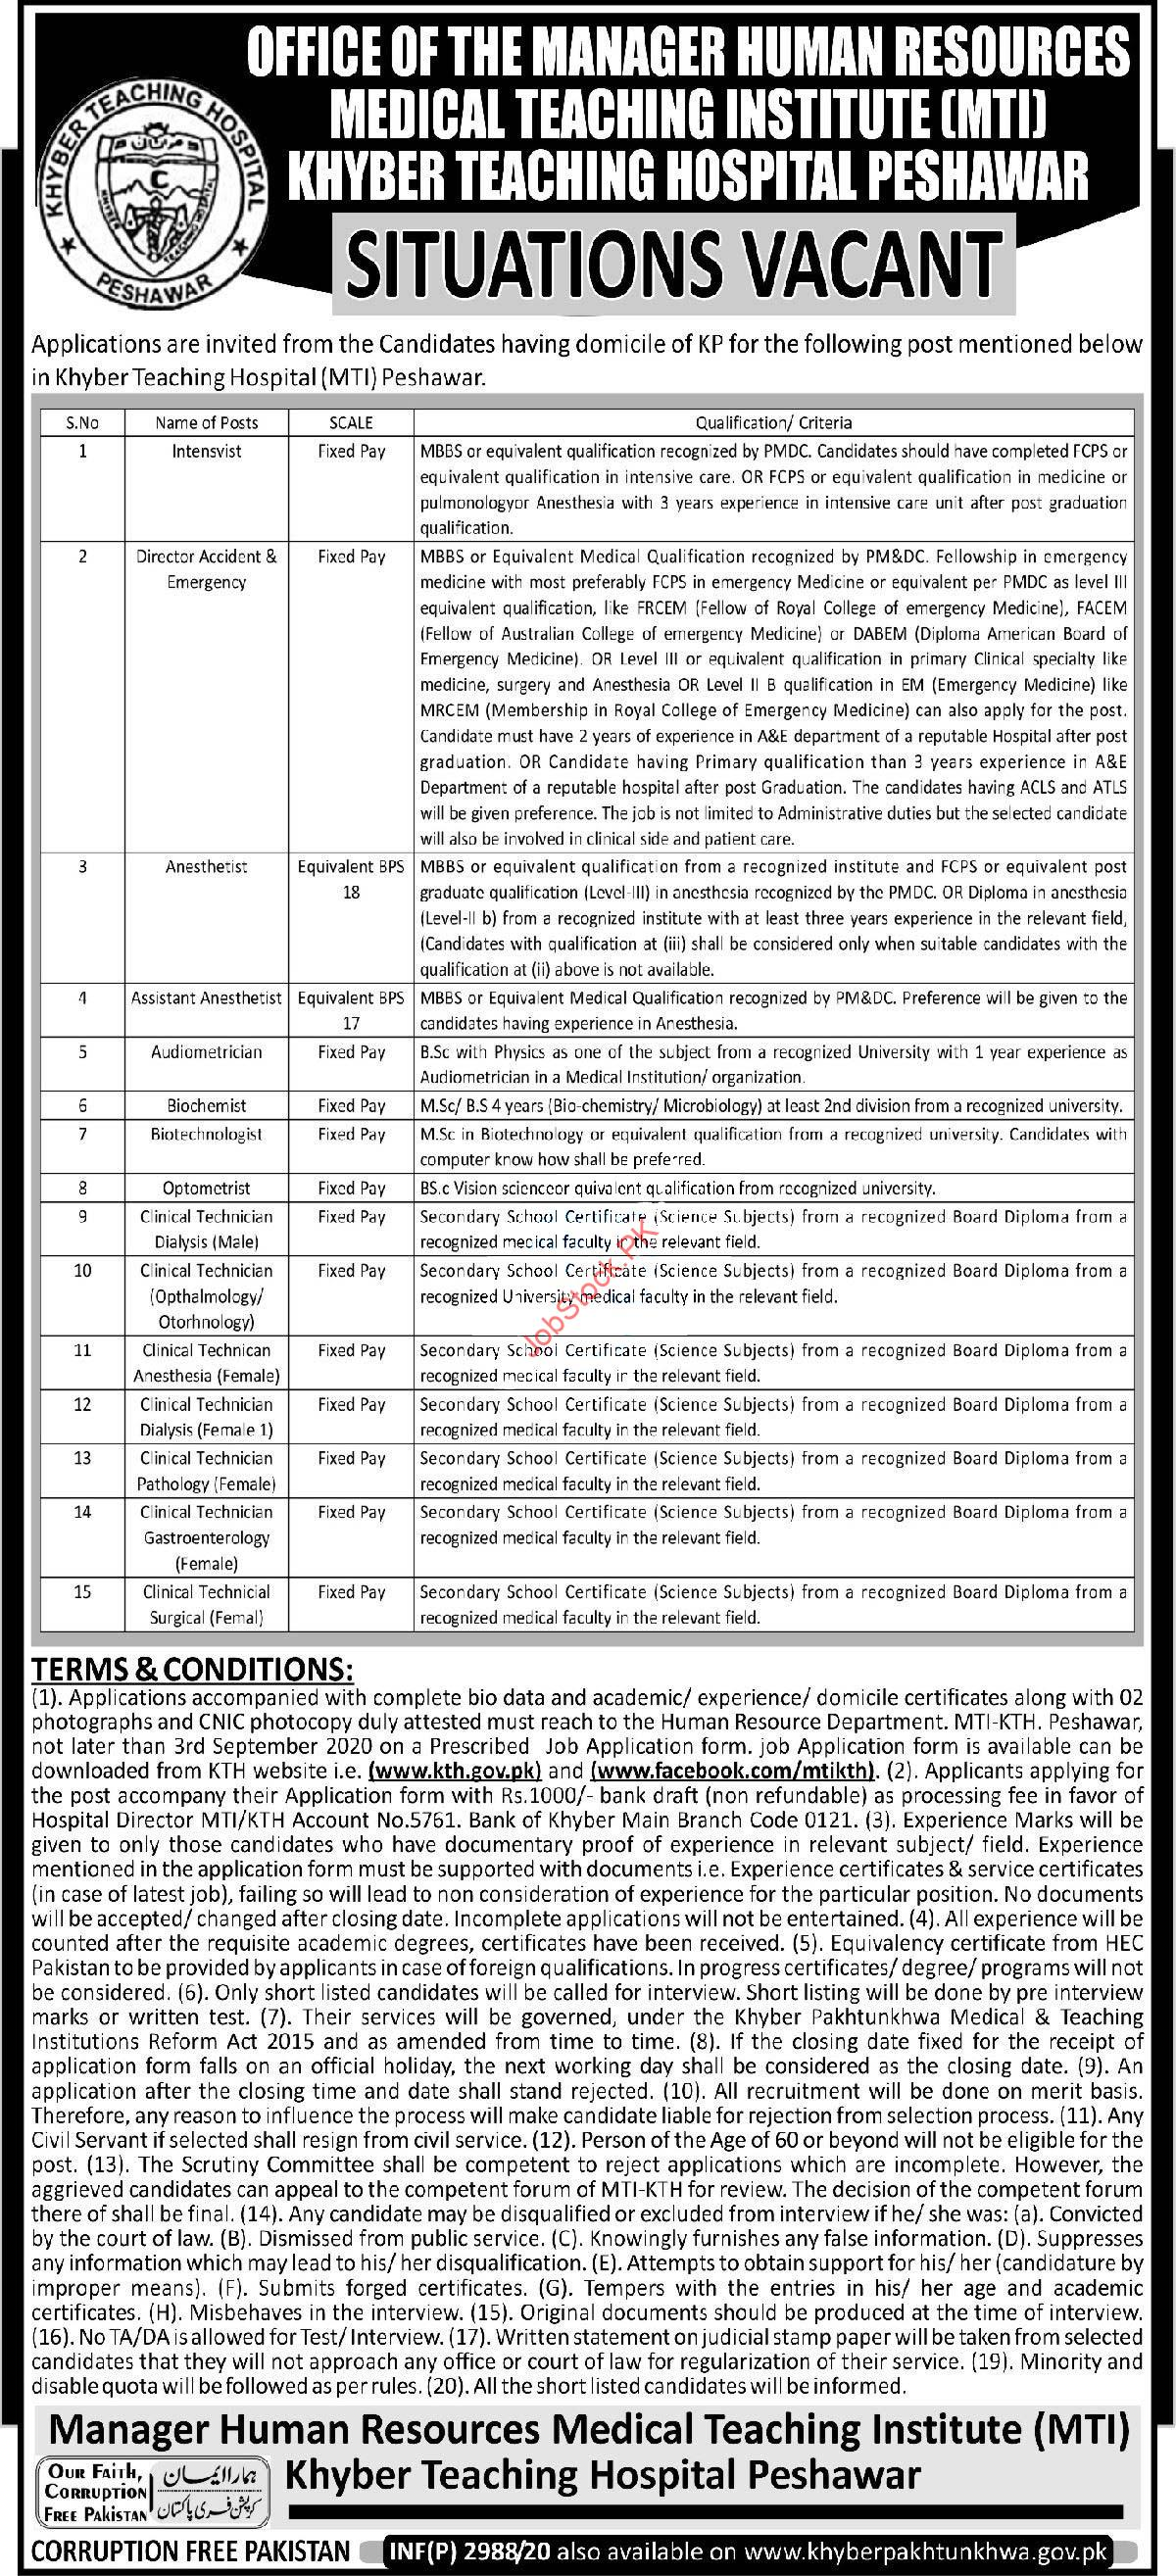 Khyber Teaching Hospital Kth Mti Peshawar Jobs 2020 Latest